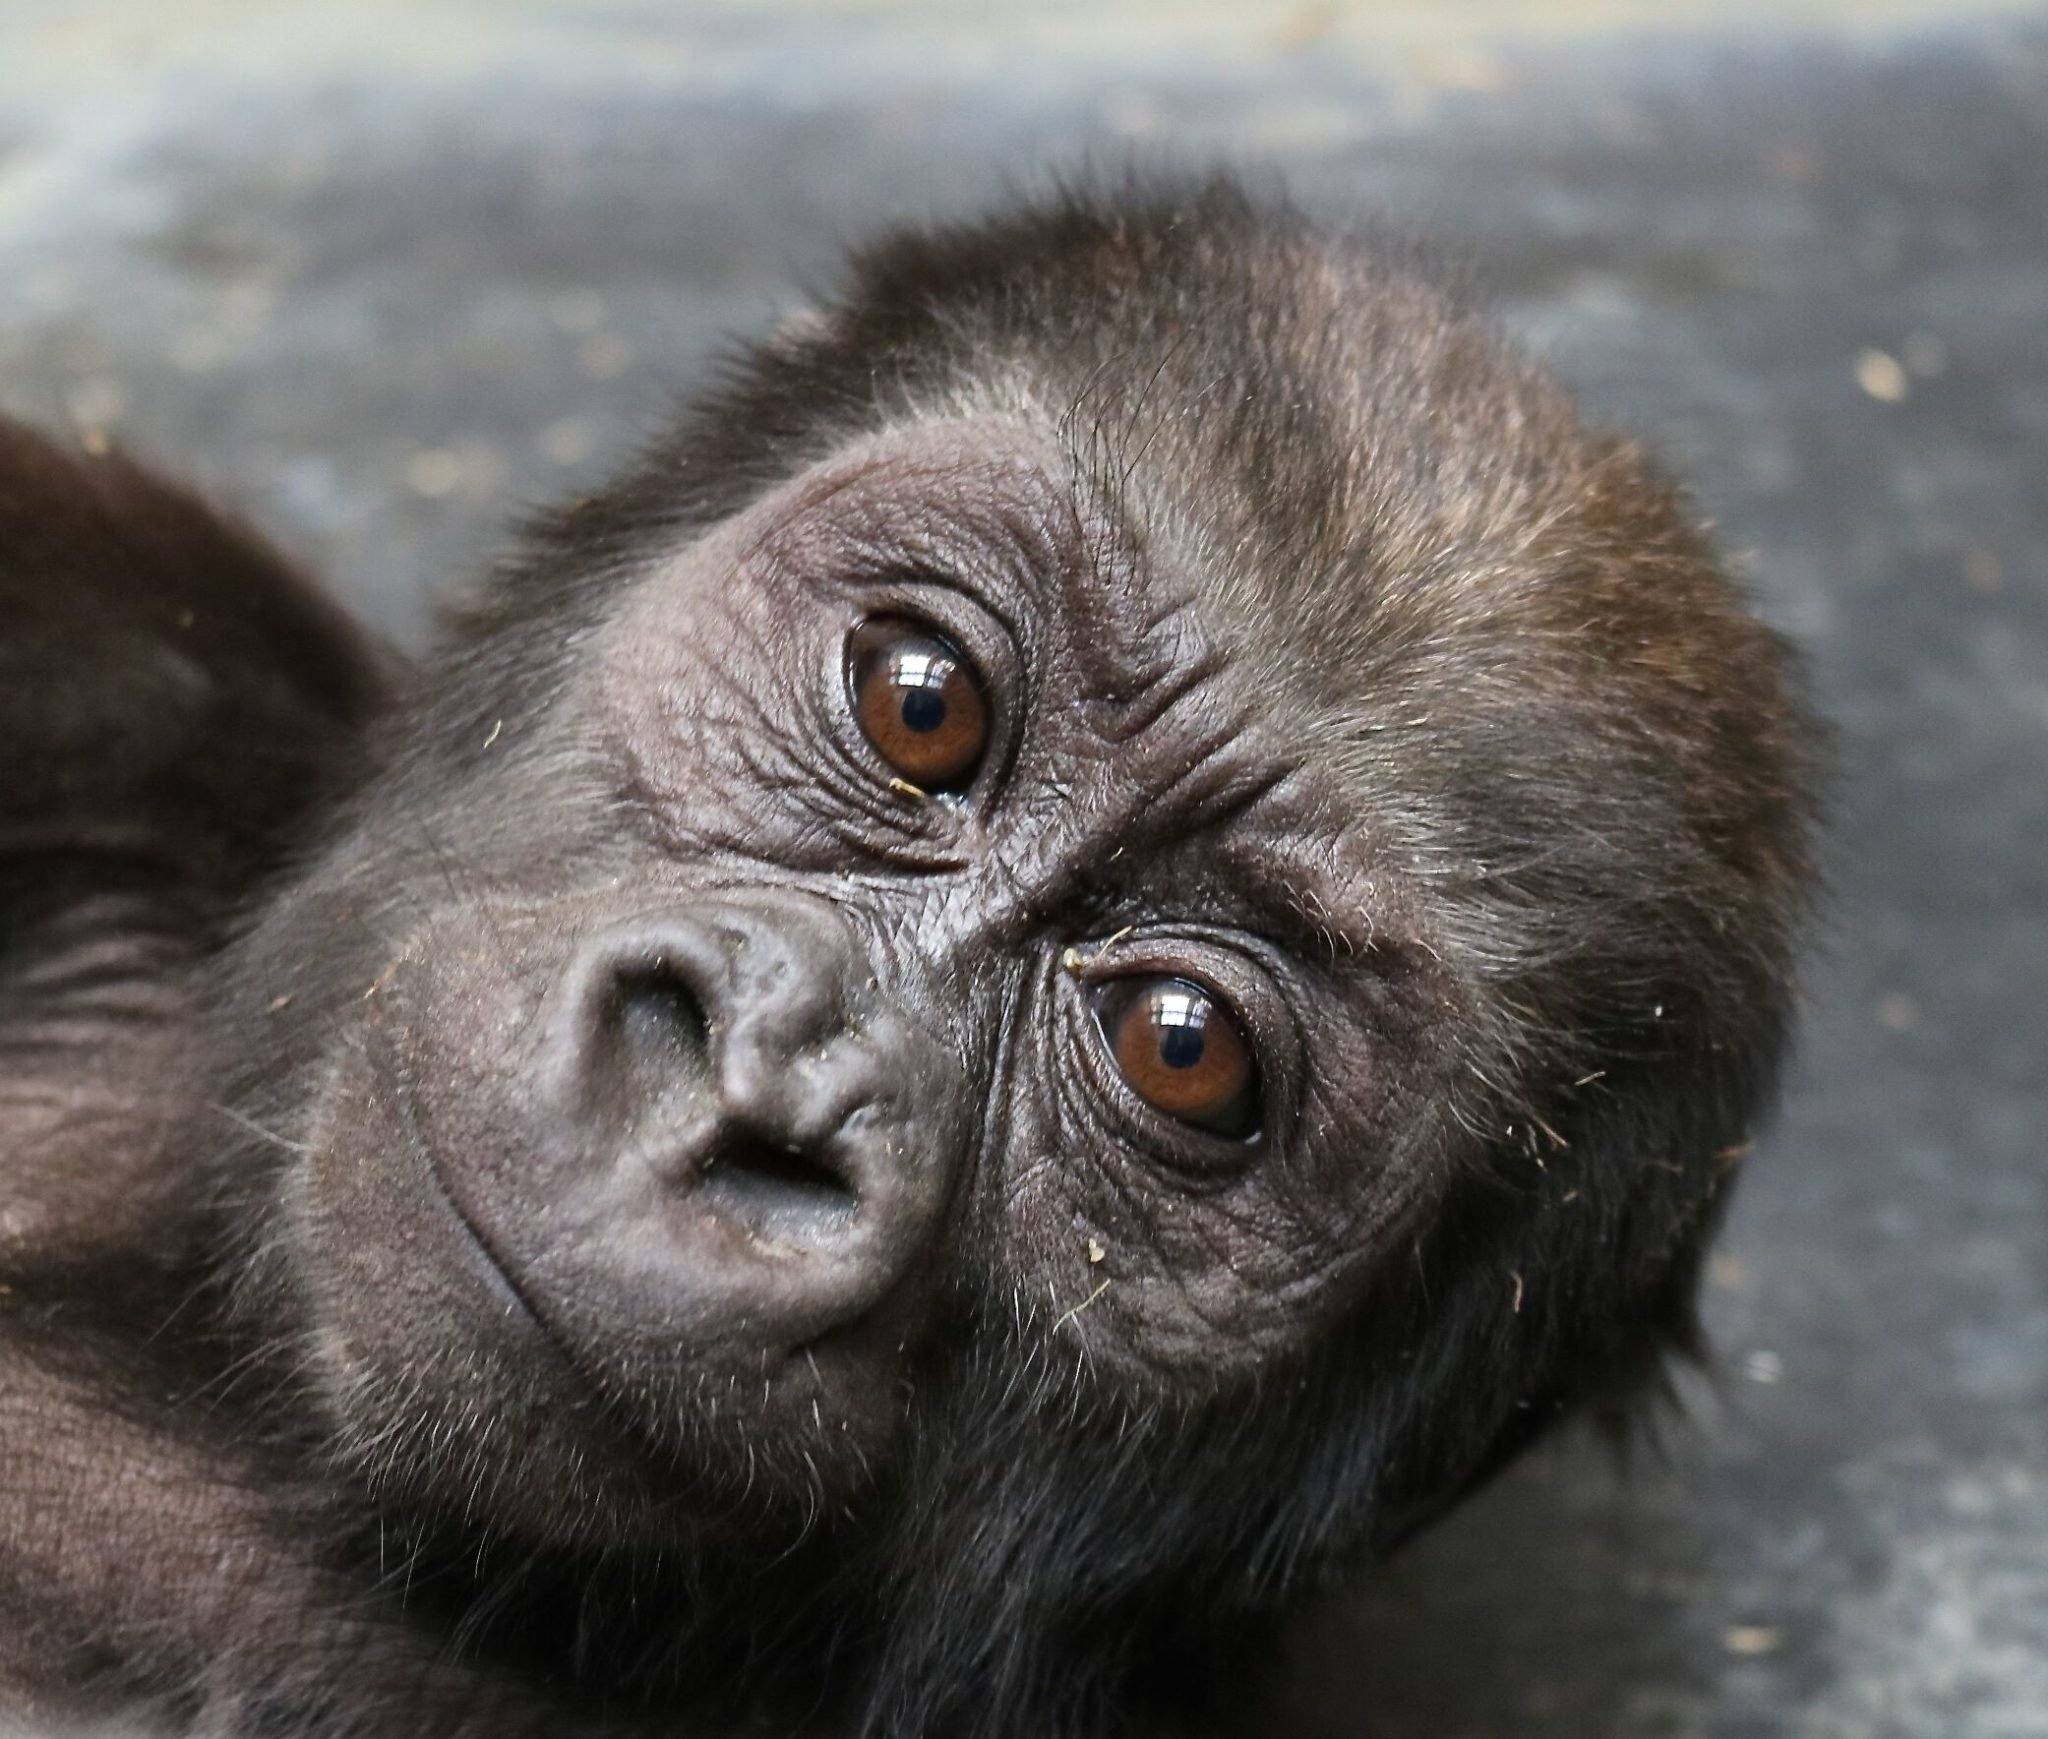 Moke the baby gorilla is recovering from a fractured femur. Photograph by Melba Brown.